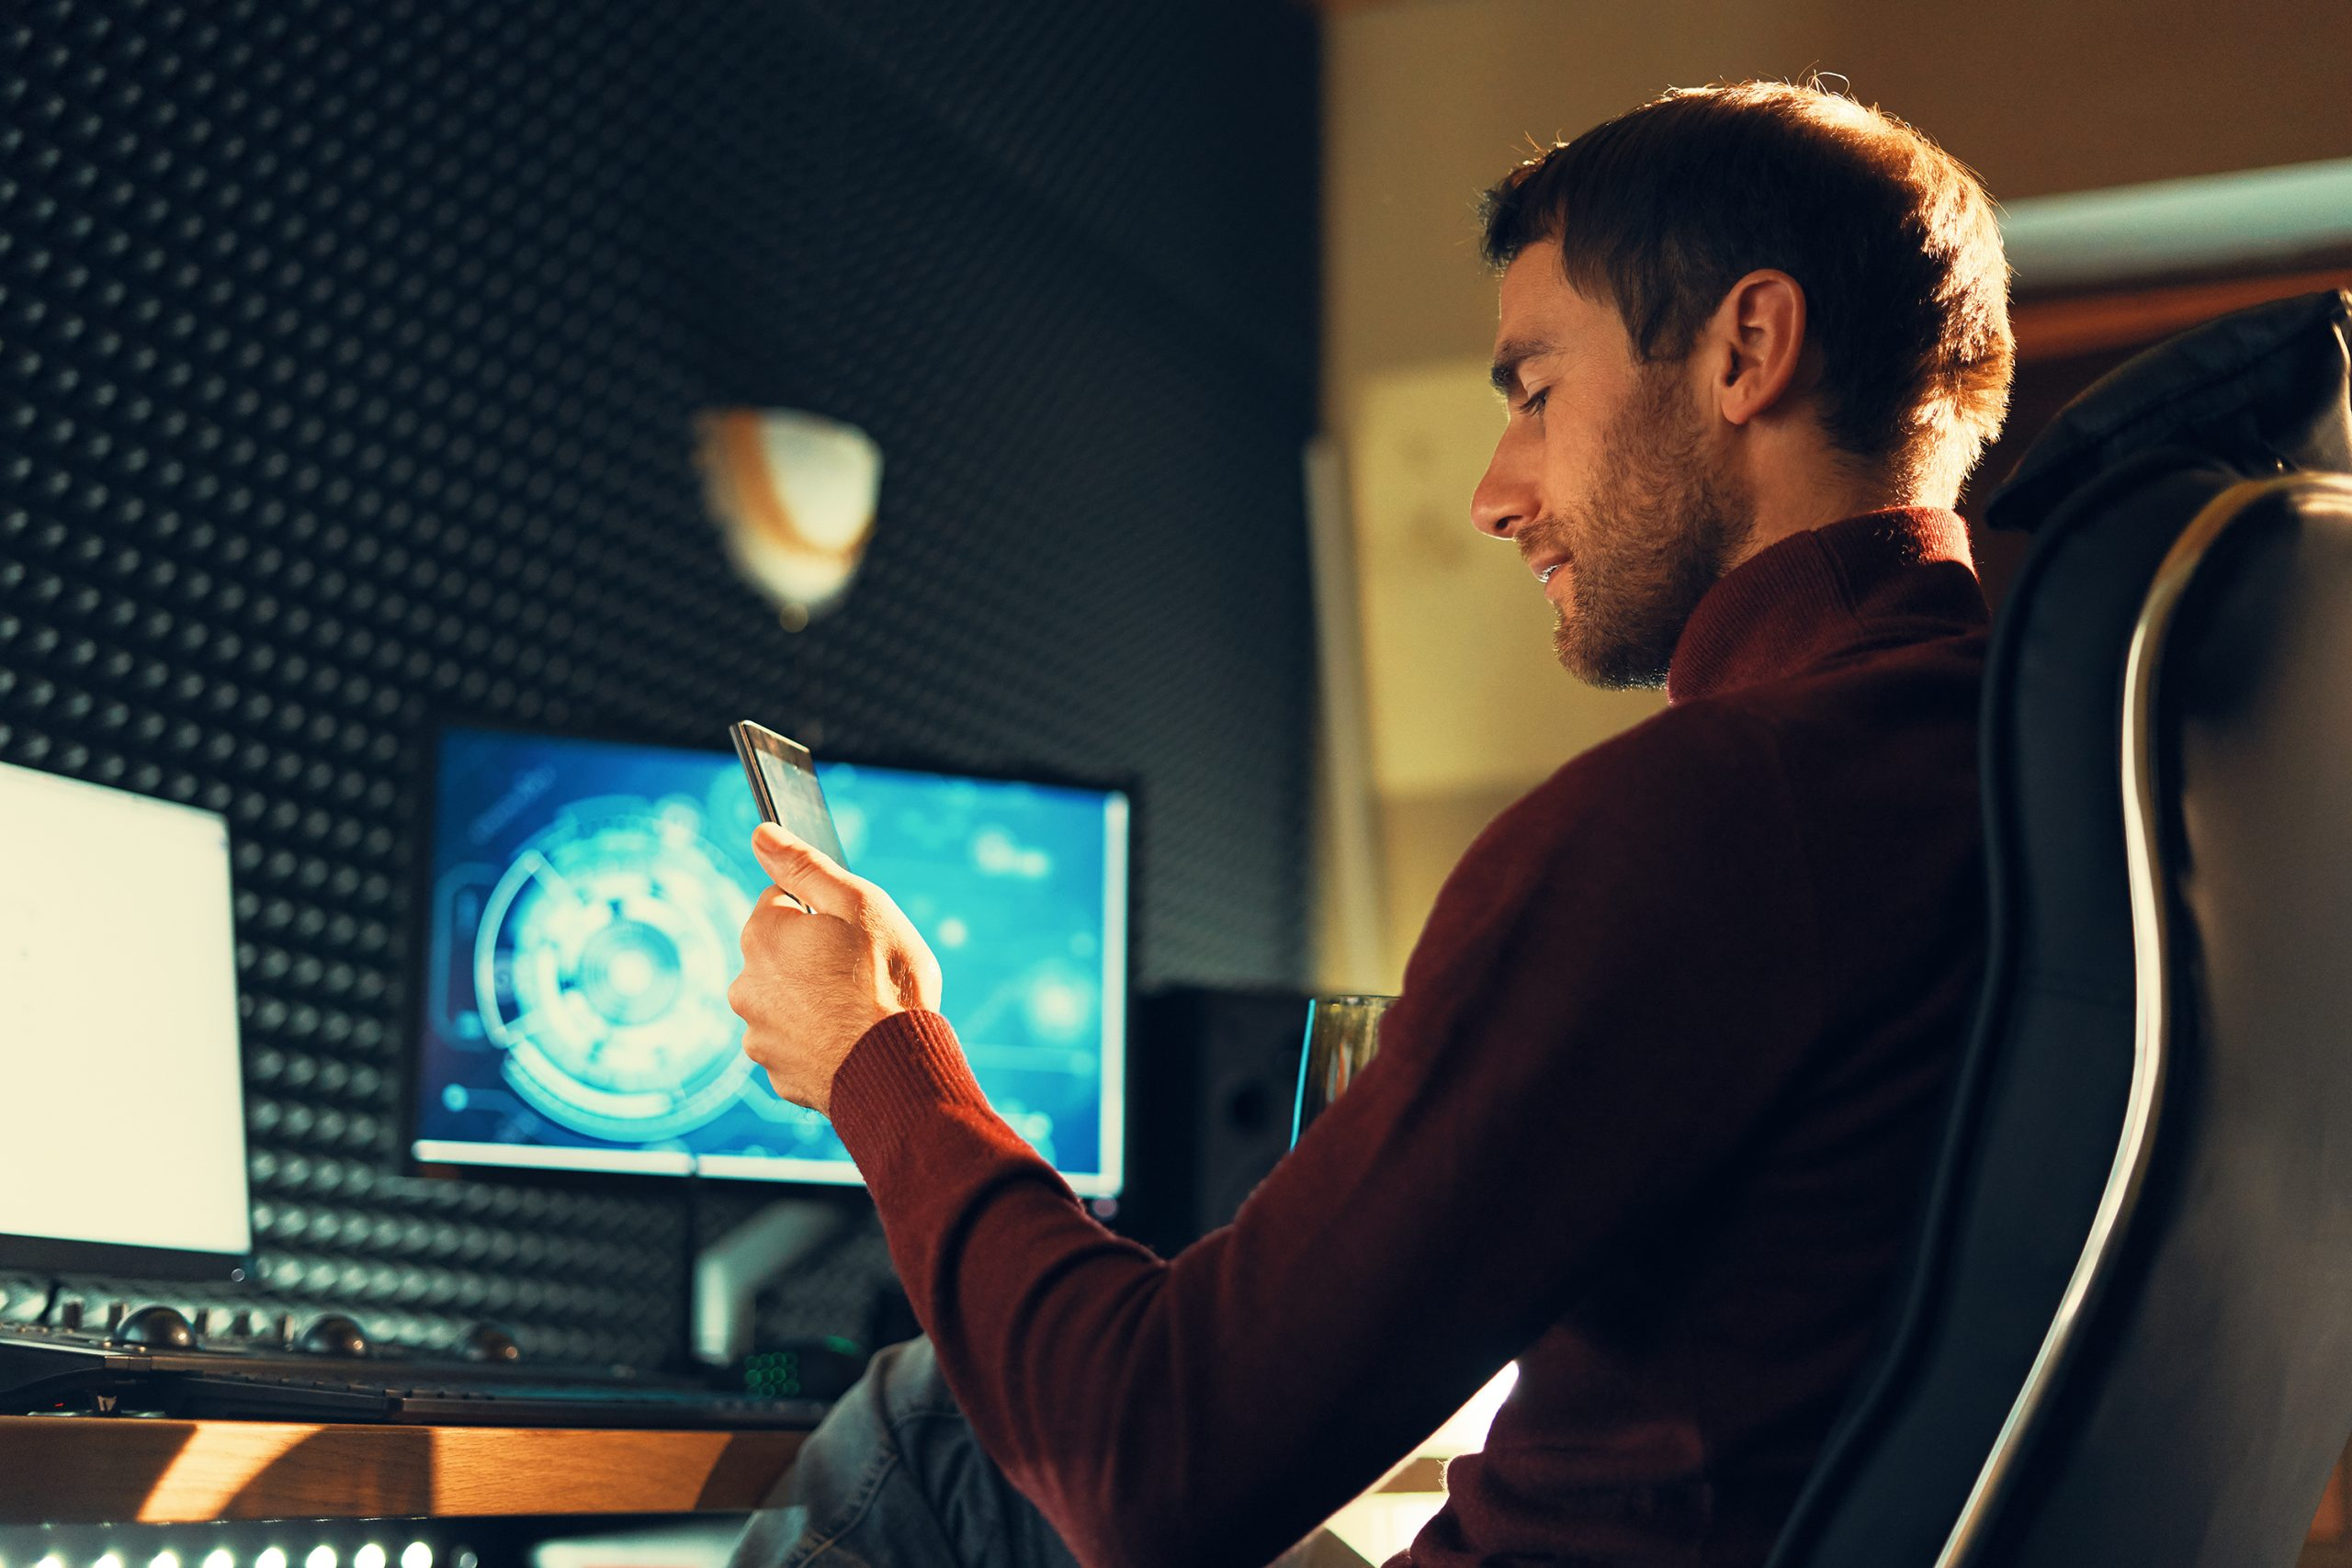 5 tips for soundproofing your office space